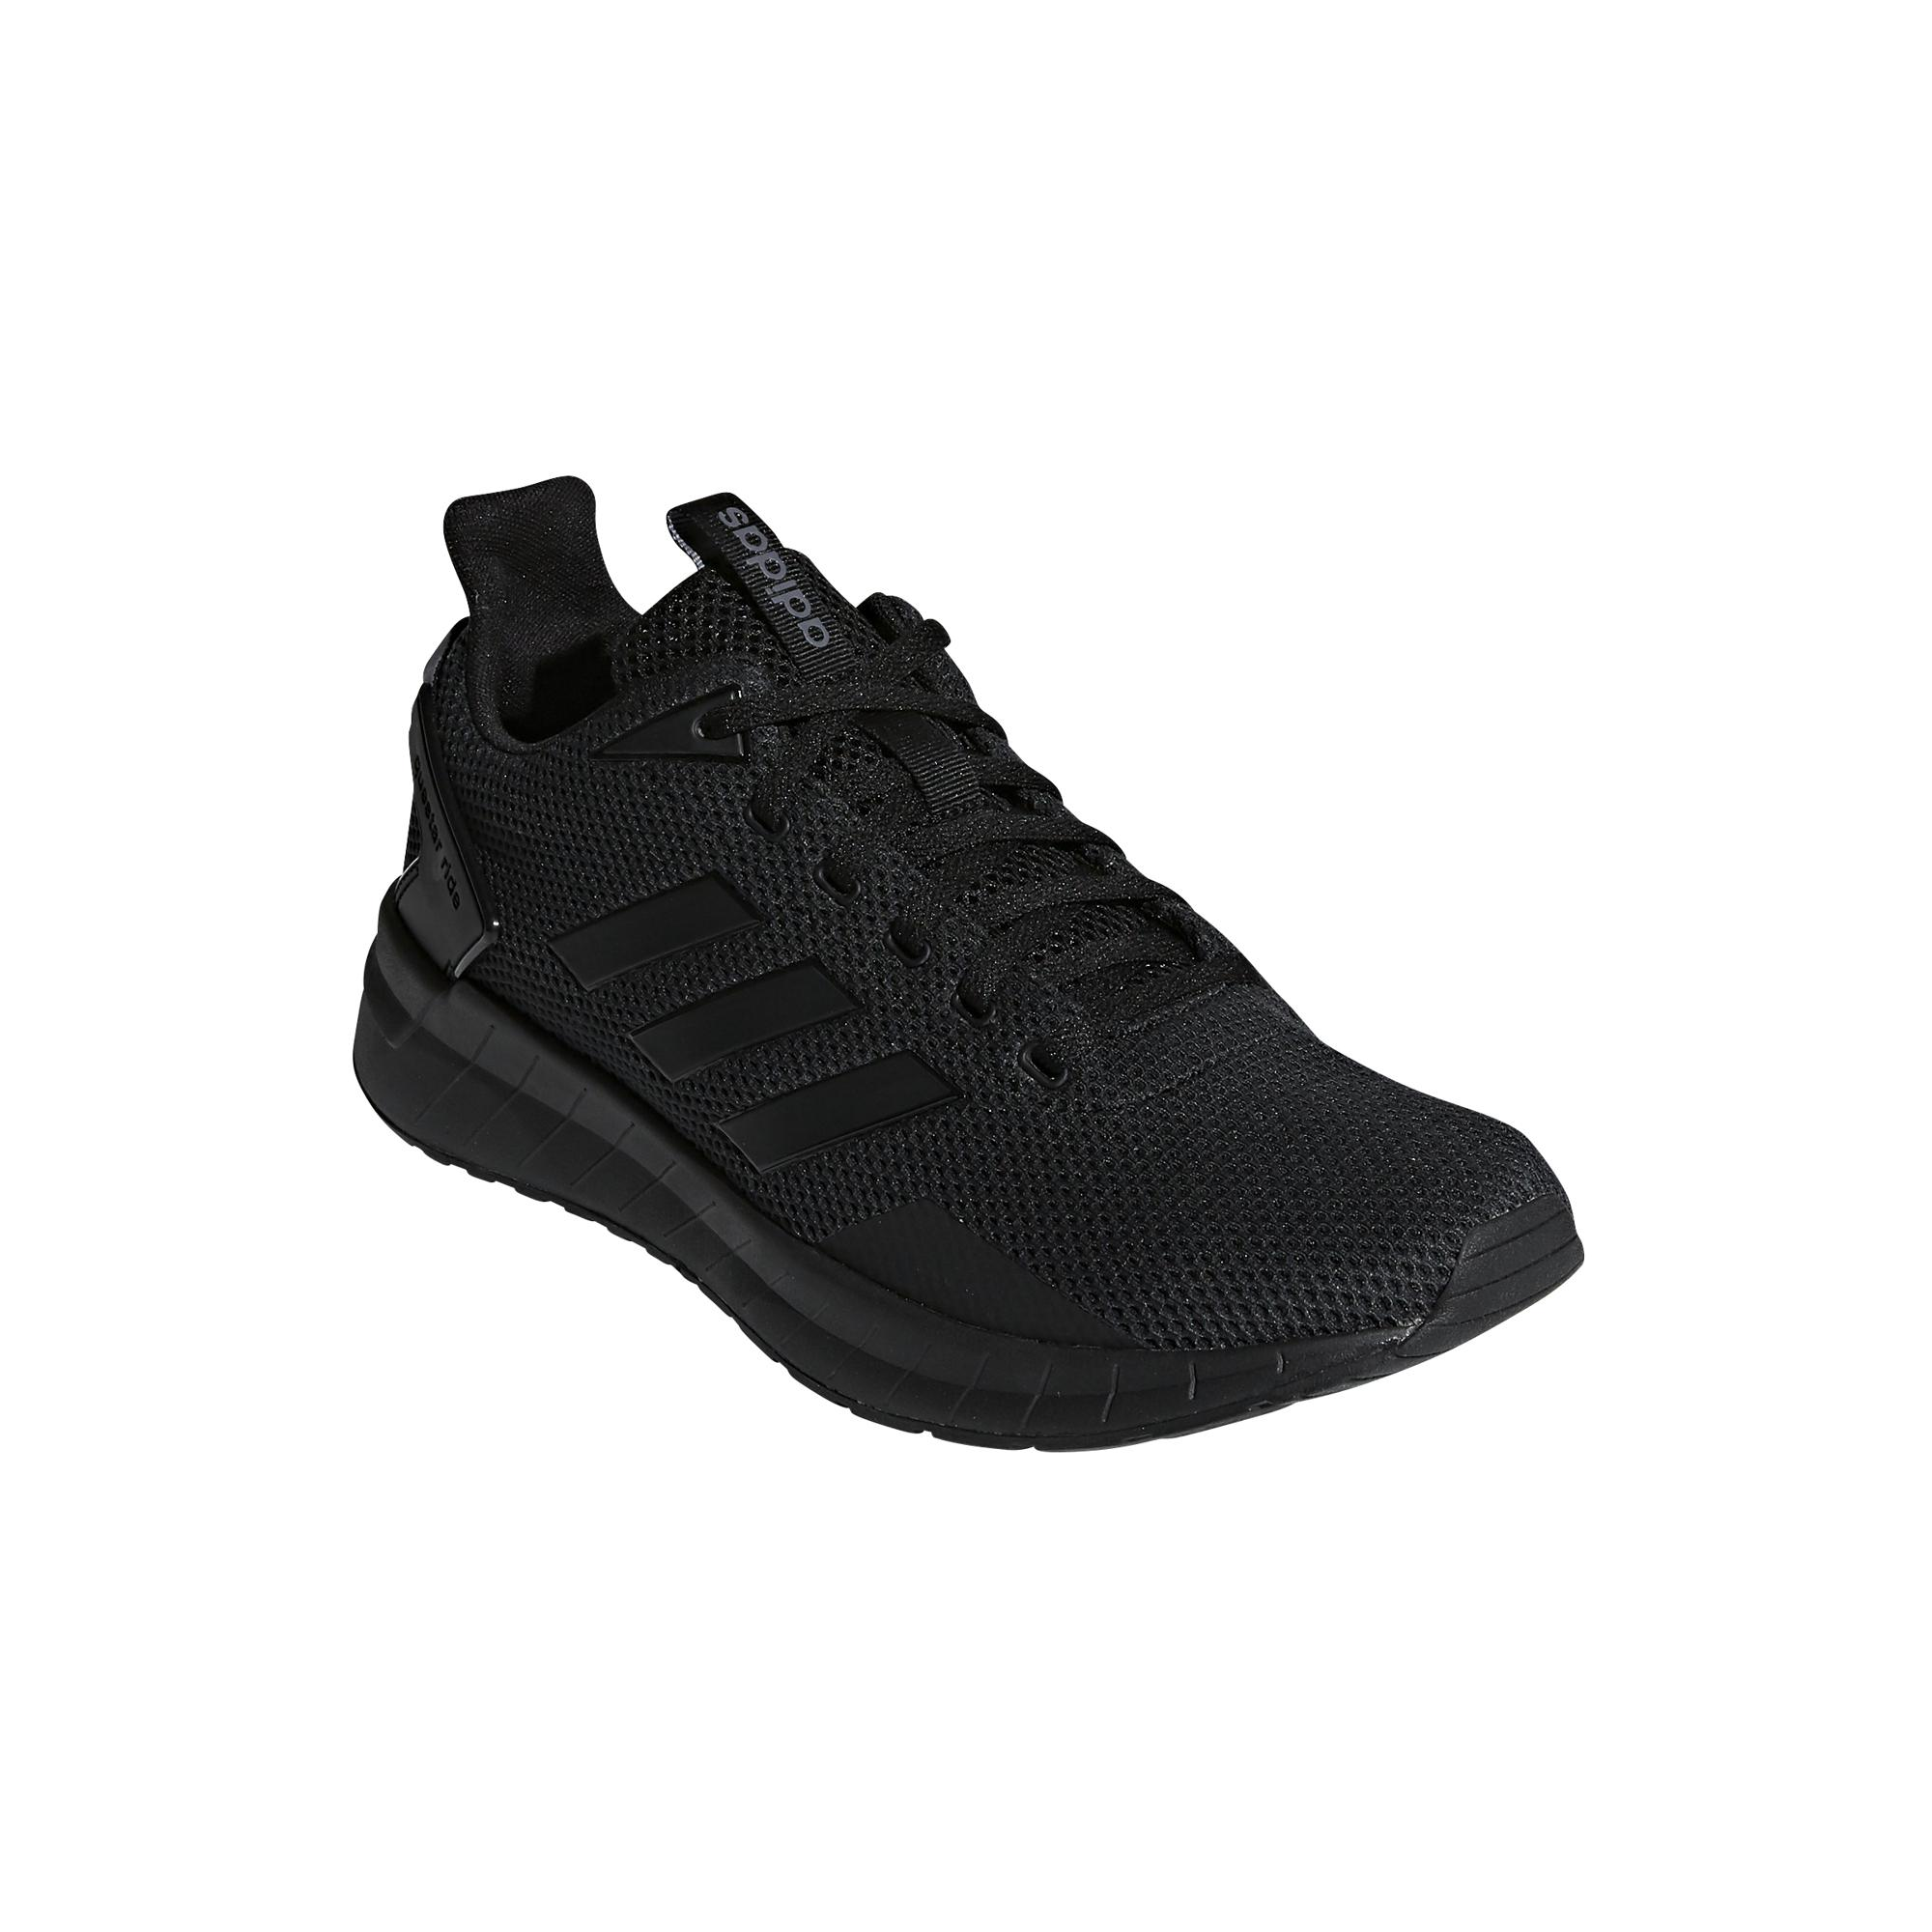 13e8306192c adidas Questar Ride Men s Running Shoes (B44806)